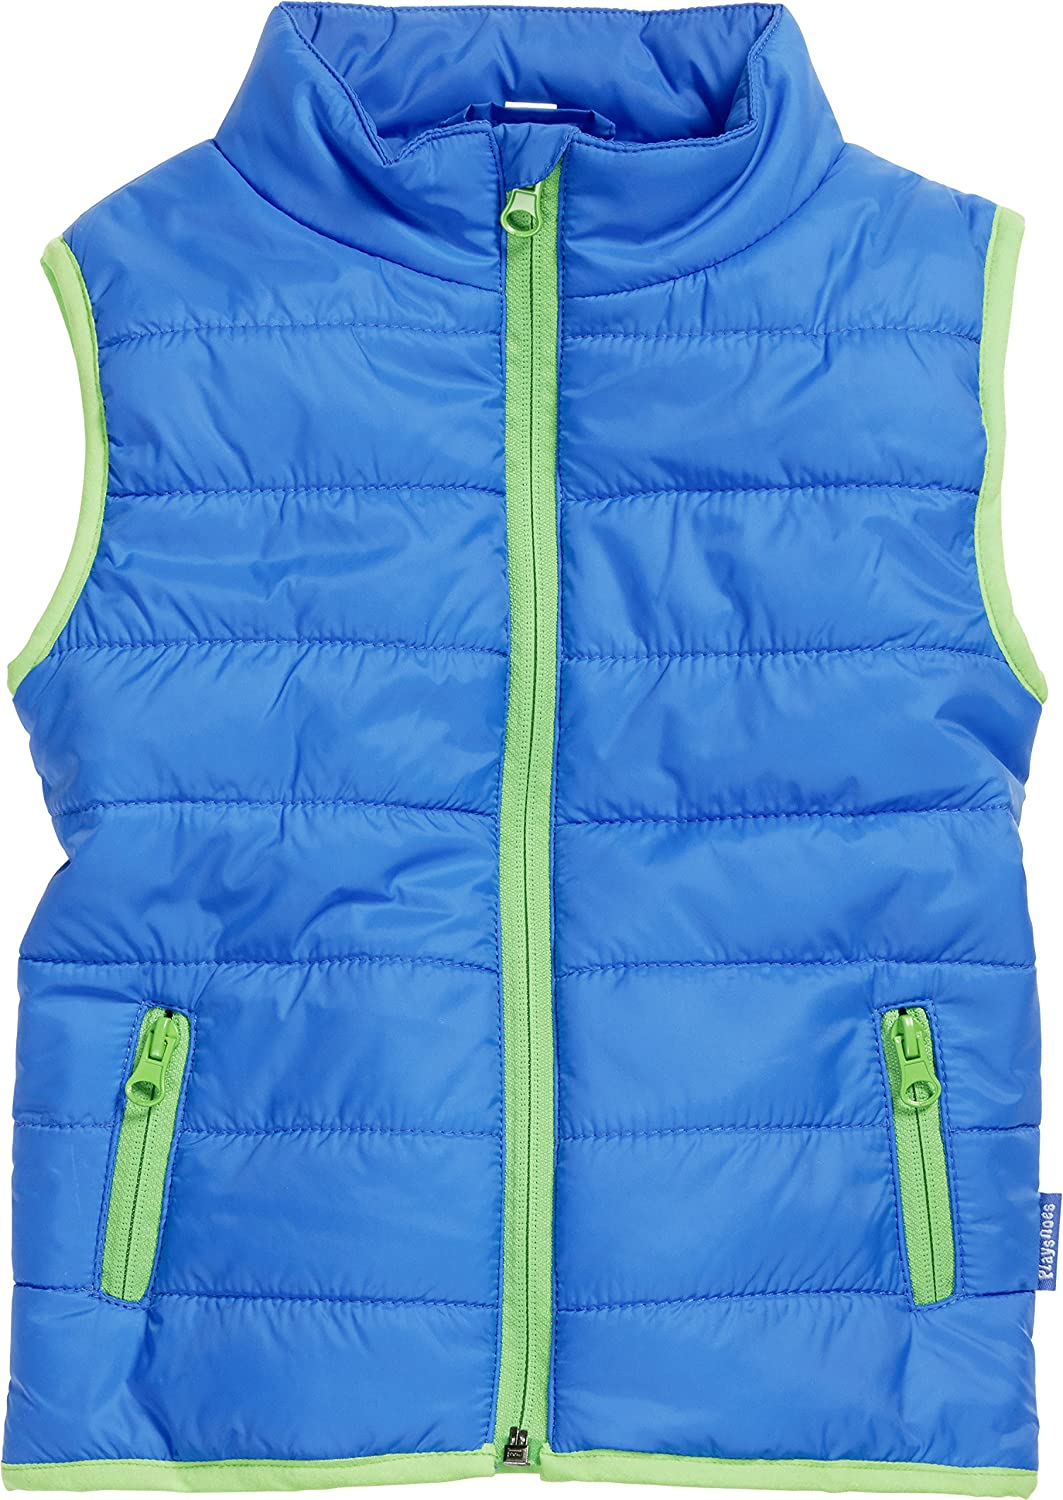 Playshoes Steppweste, Gilet Bambino Playshoes GmbH 430682